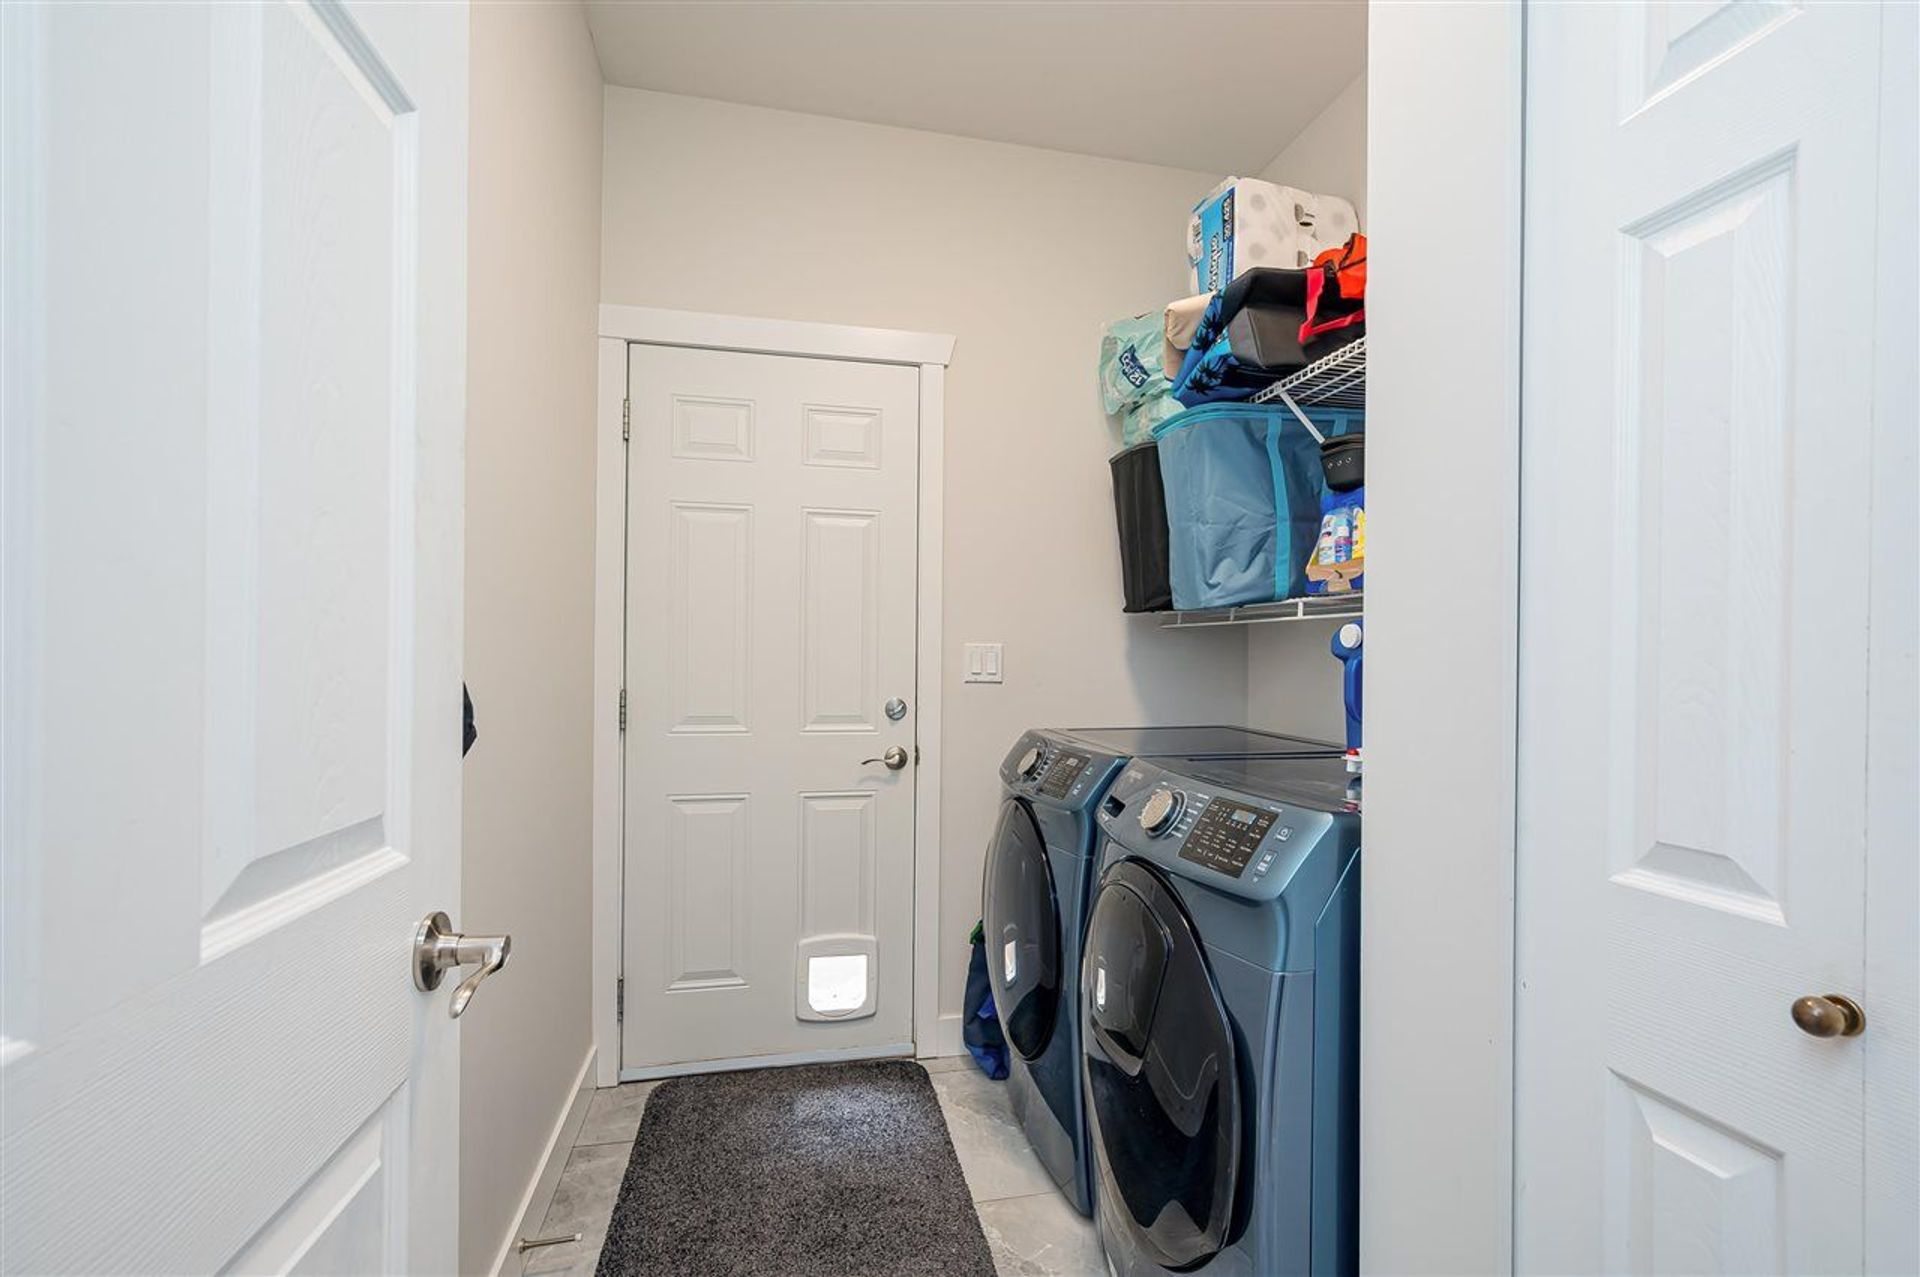 16538-60th-ave-avenue-cloverdale-bc-cloverdale-11 at 16538 60th Ave Avenue, Cloverdale BC, Cloverdale